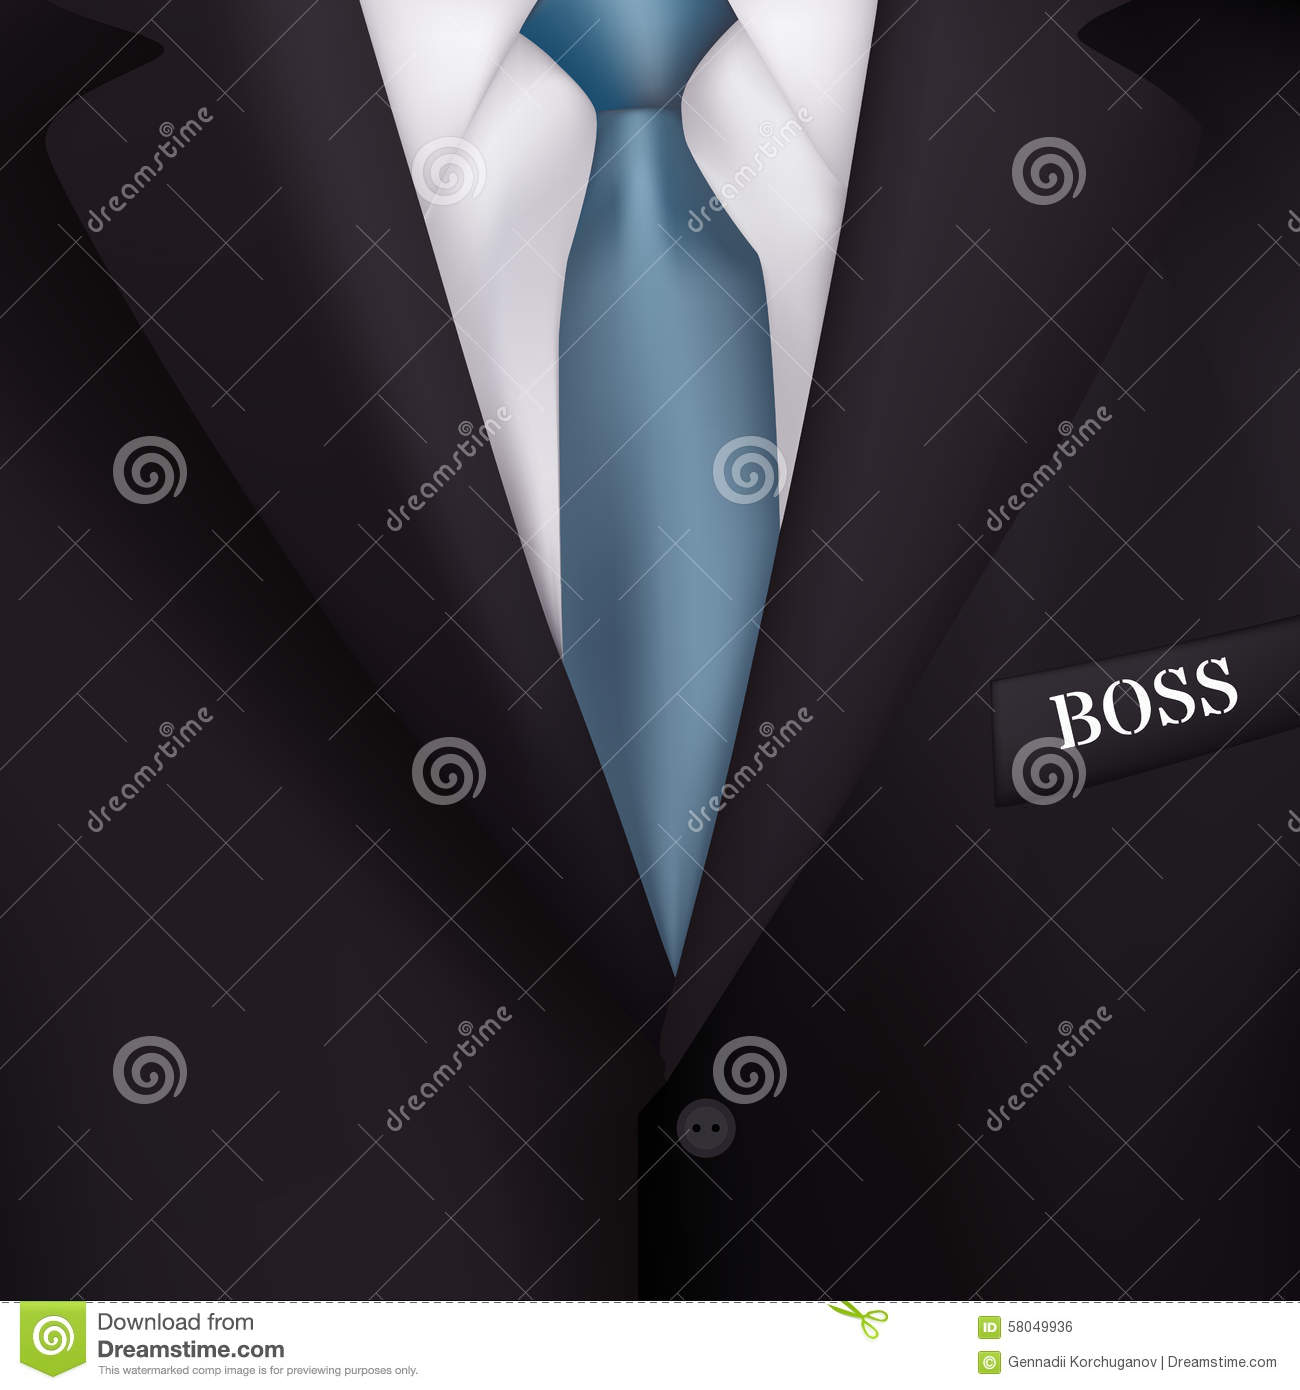 c28e2456740a Men s suit with a blue tie-style realism backgrounds for business gifts